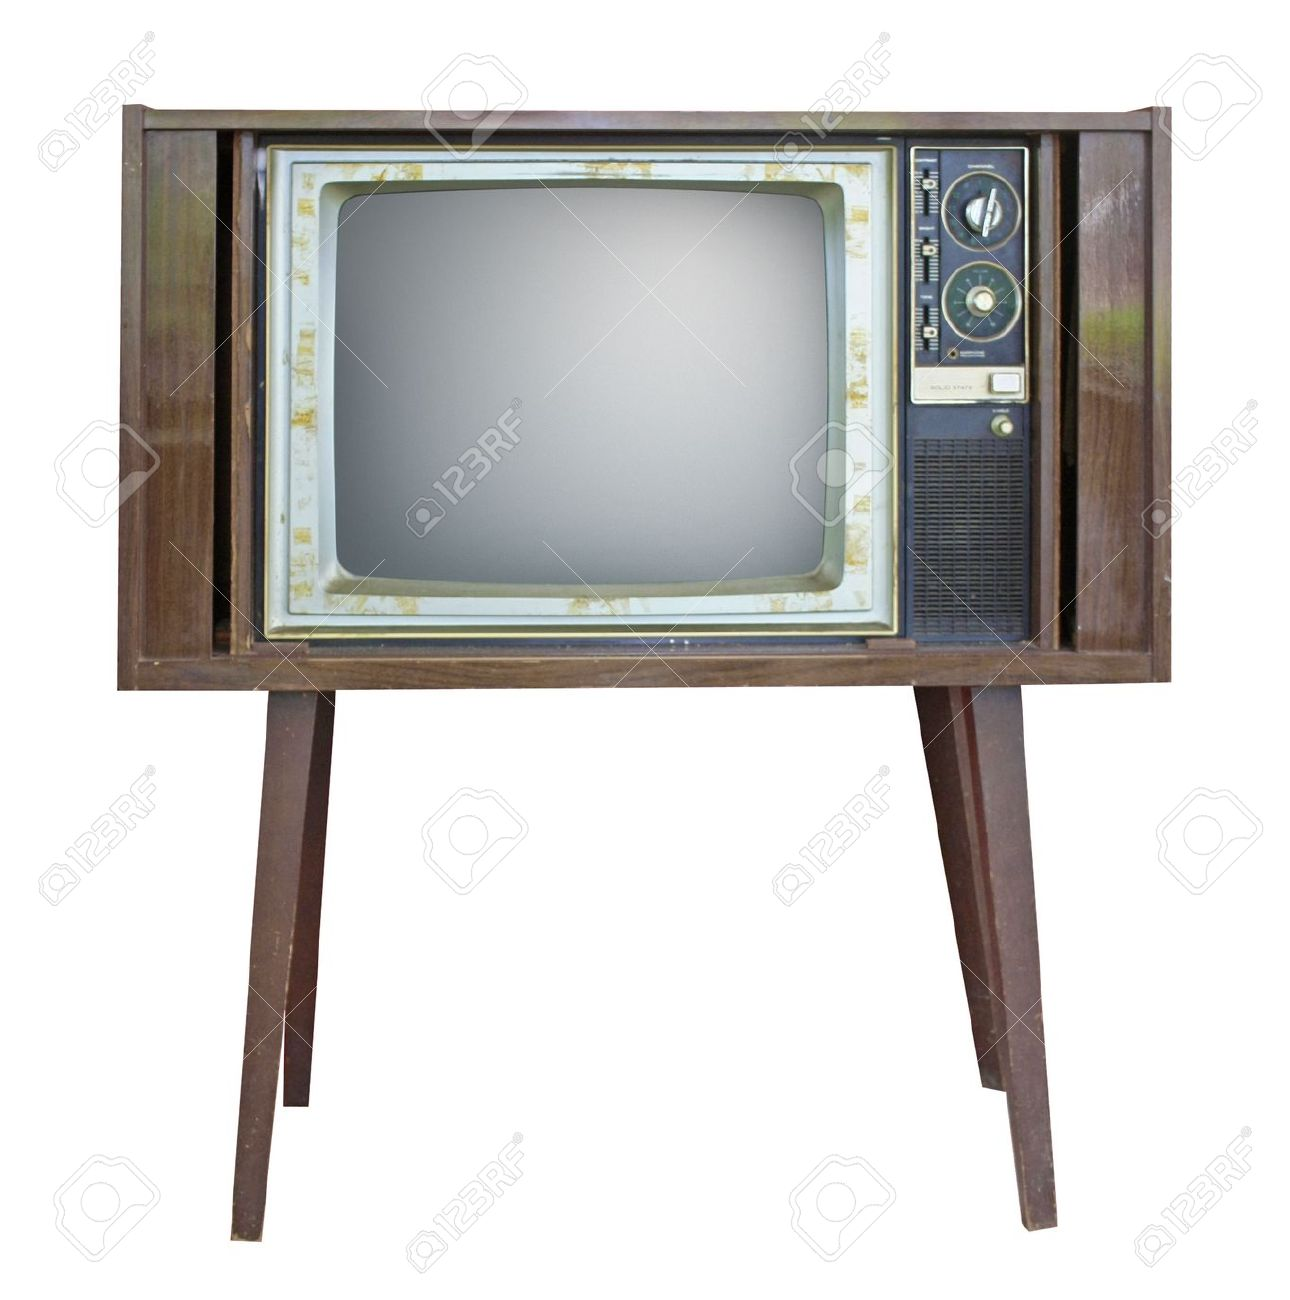 Retro style old TV Stock Photo - 8997379